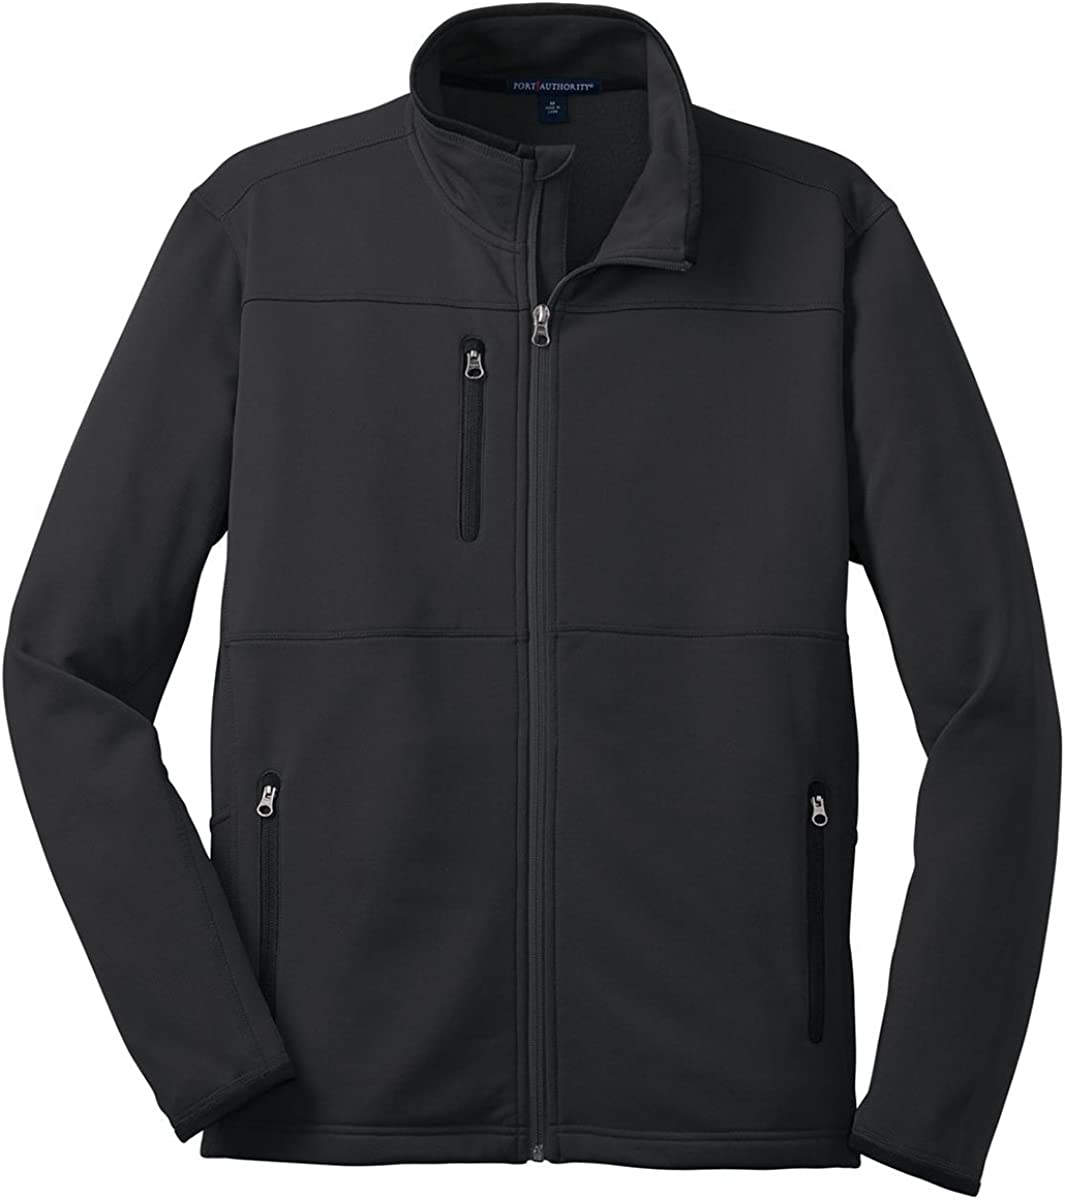 Port Authority Finally resale start F222 Pique Fleece - Outlet ☆ Free Shipping 4XL Jacket Black